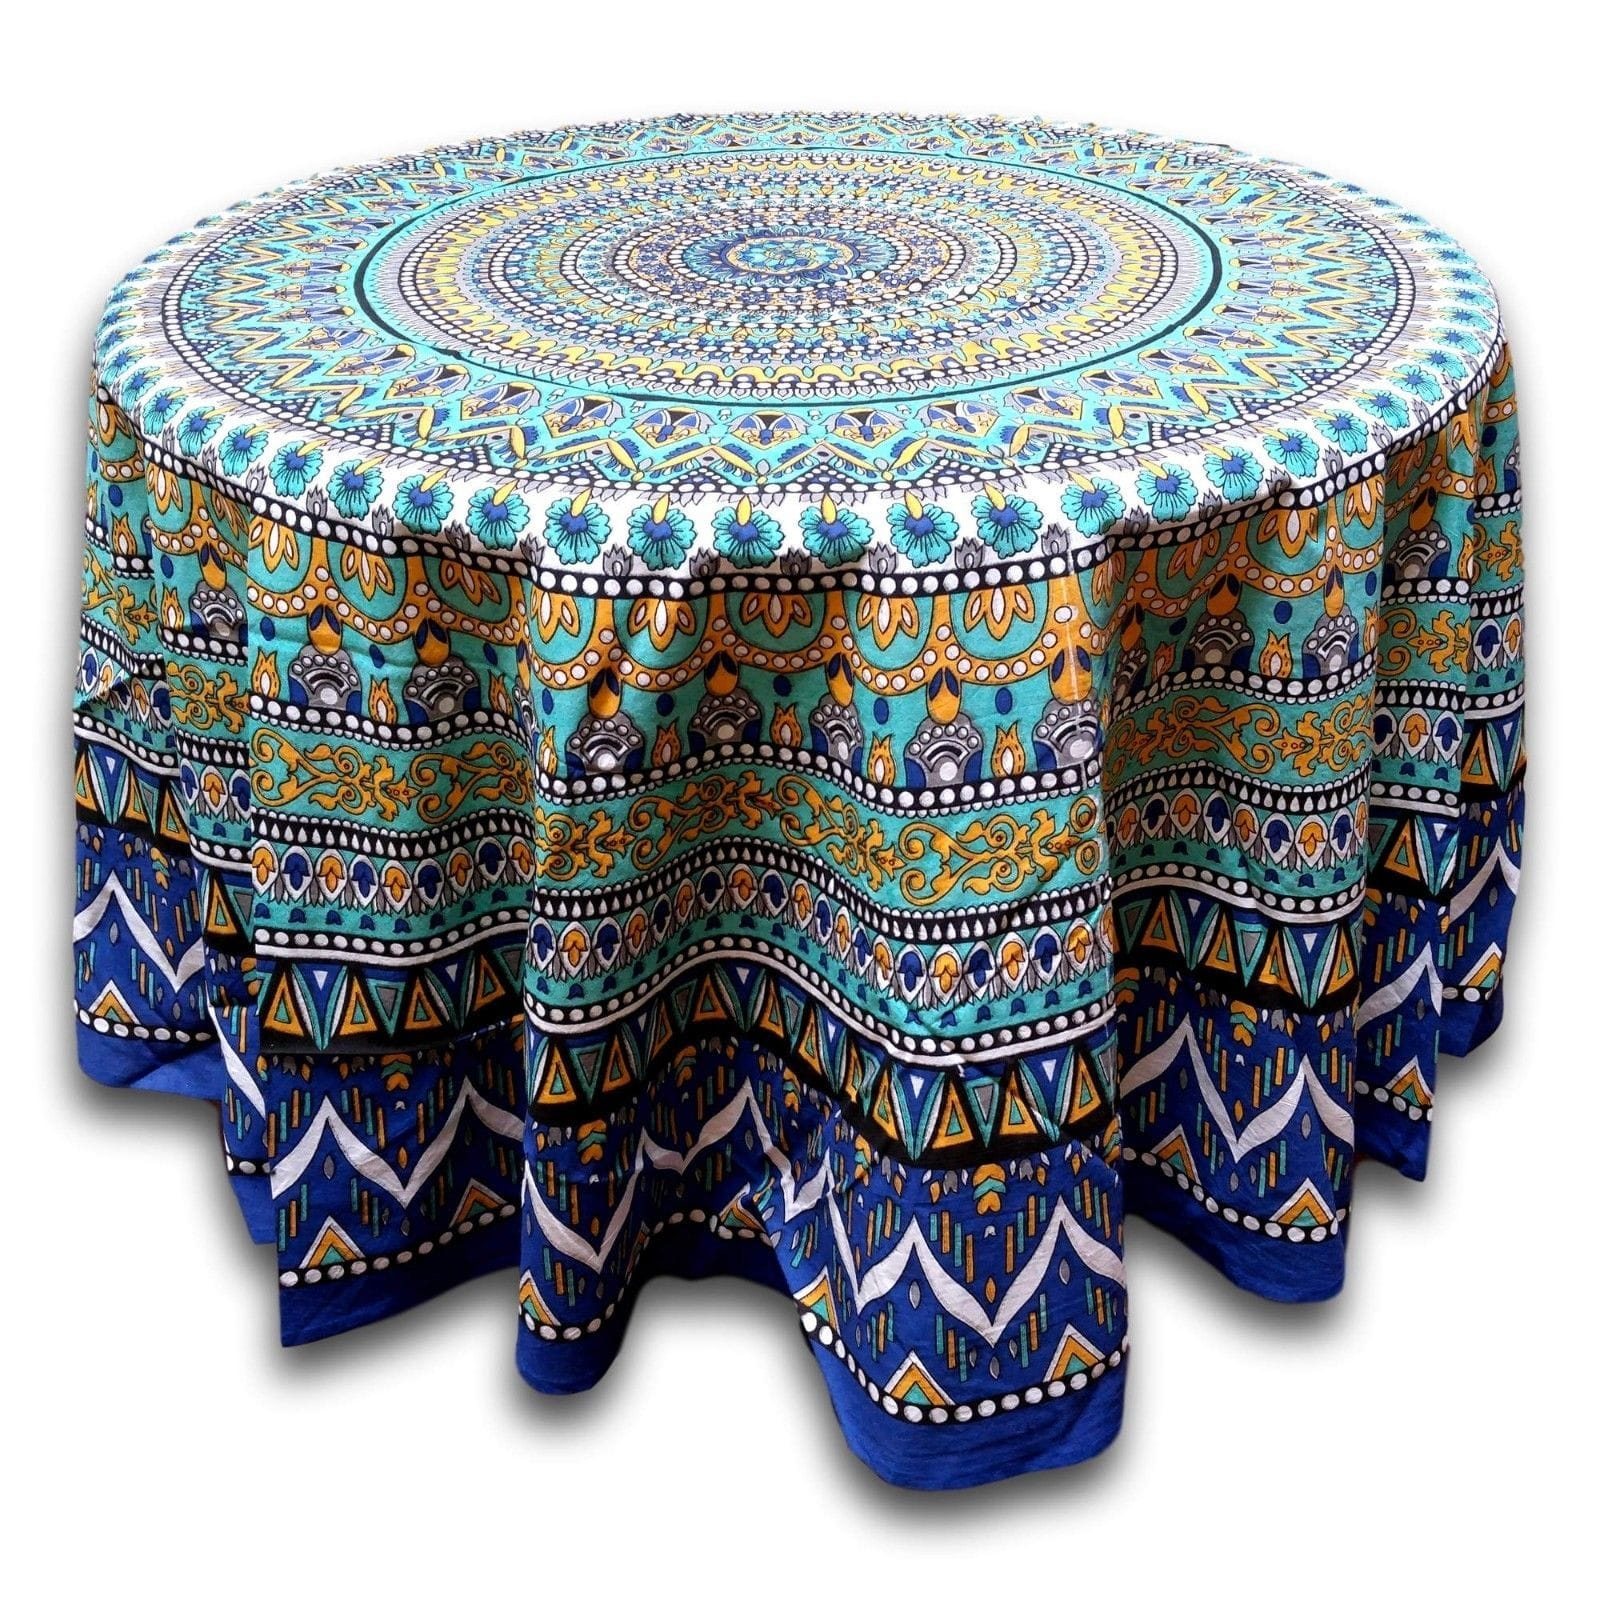 floral mandala cotton round tablecloth for square tables blue inches green beach sheet small accent table cloth orange pink target decorative pillows college room decor ikea bath